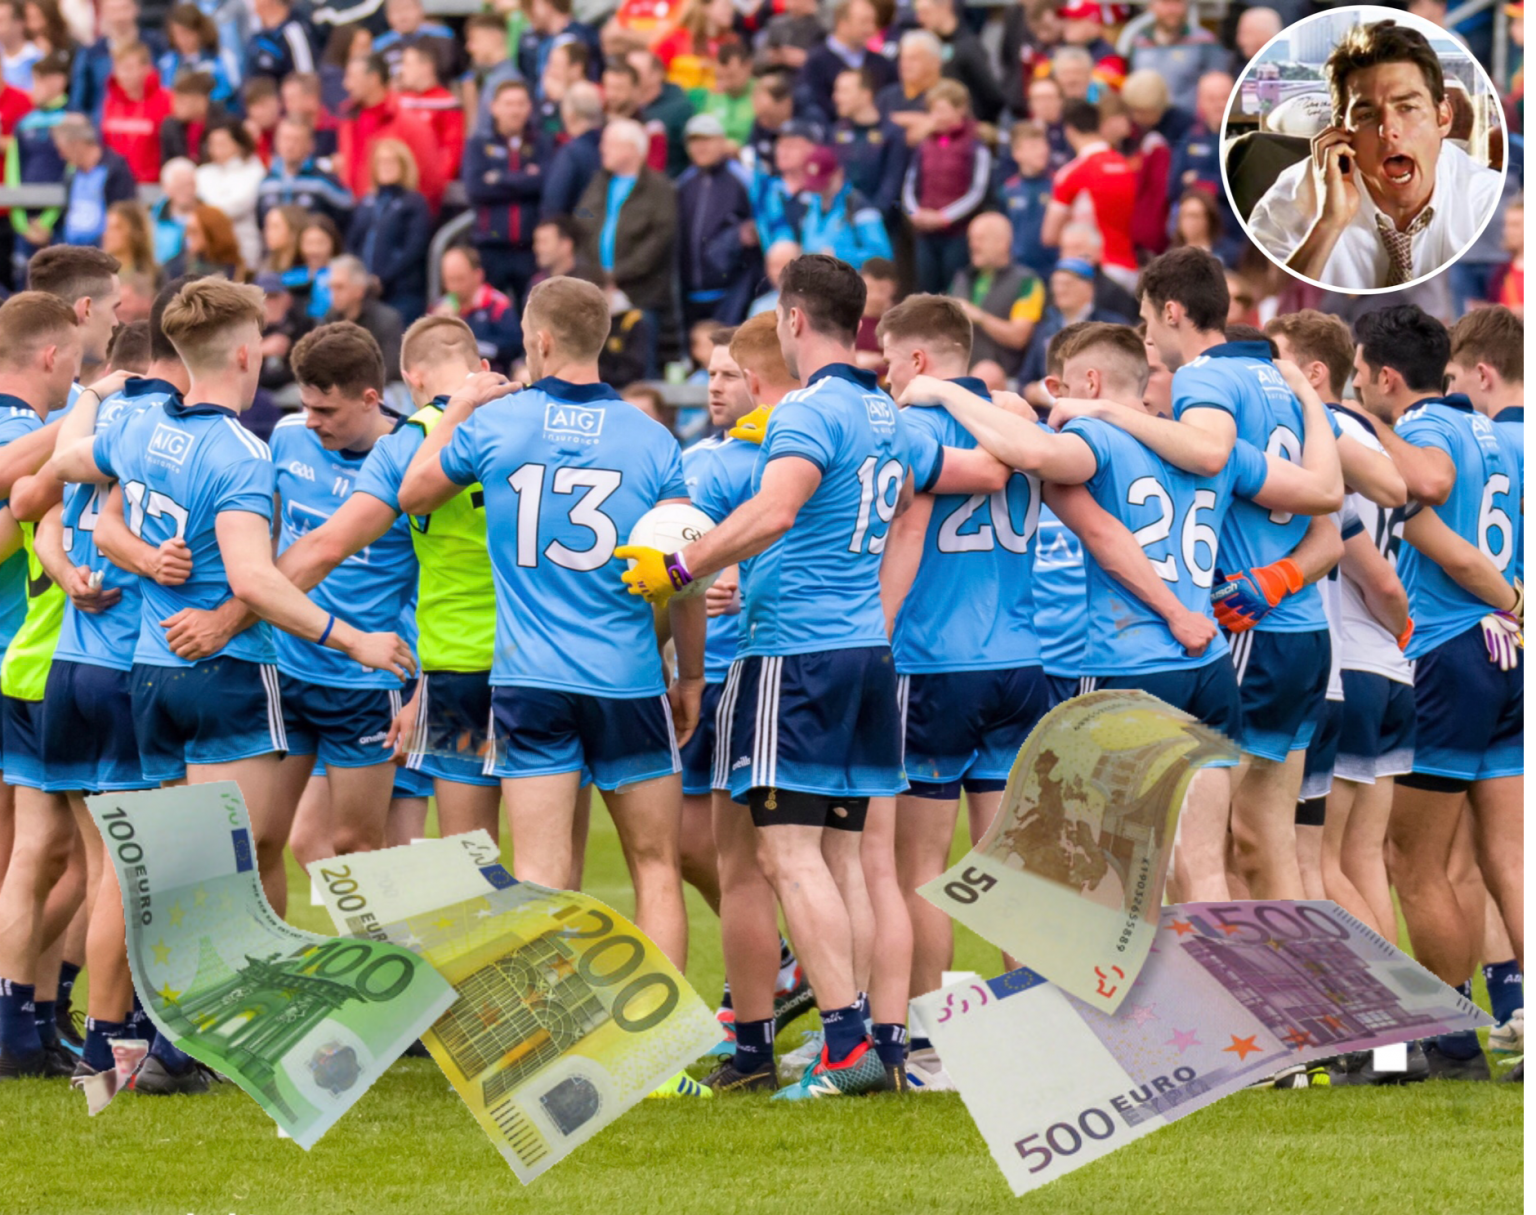 Dublin Football Squad In a huddle with euro notes in the foreground and a small circle in the top right hand corner with Tome Cruise playing the part of sports agent Jerry Maguire to signify the false narrative about money and the media's effort to link it to Dublin's success